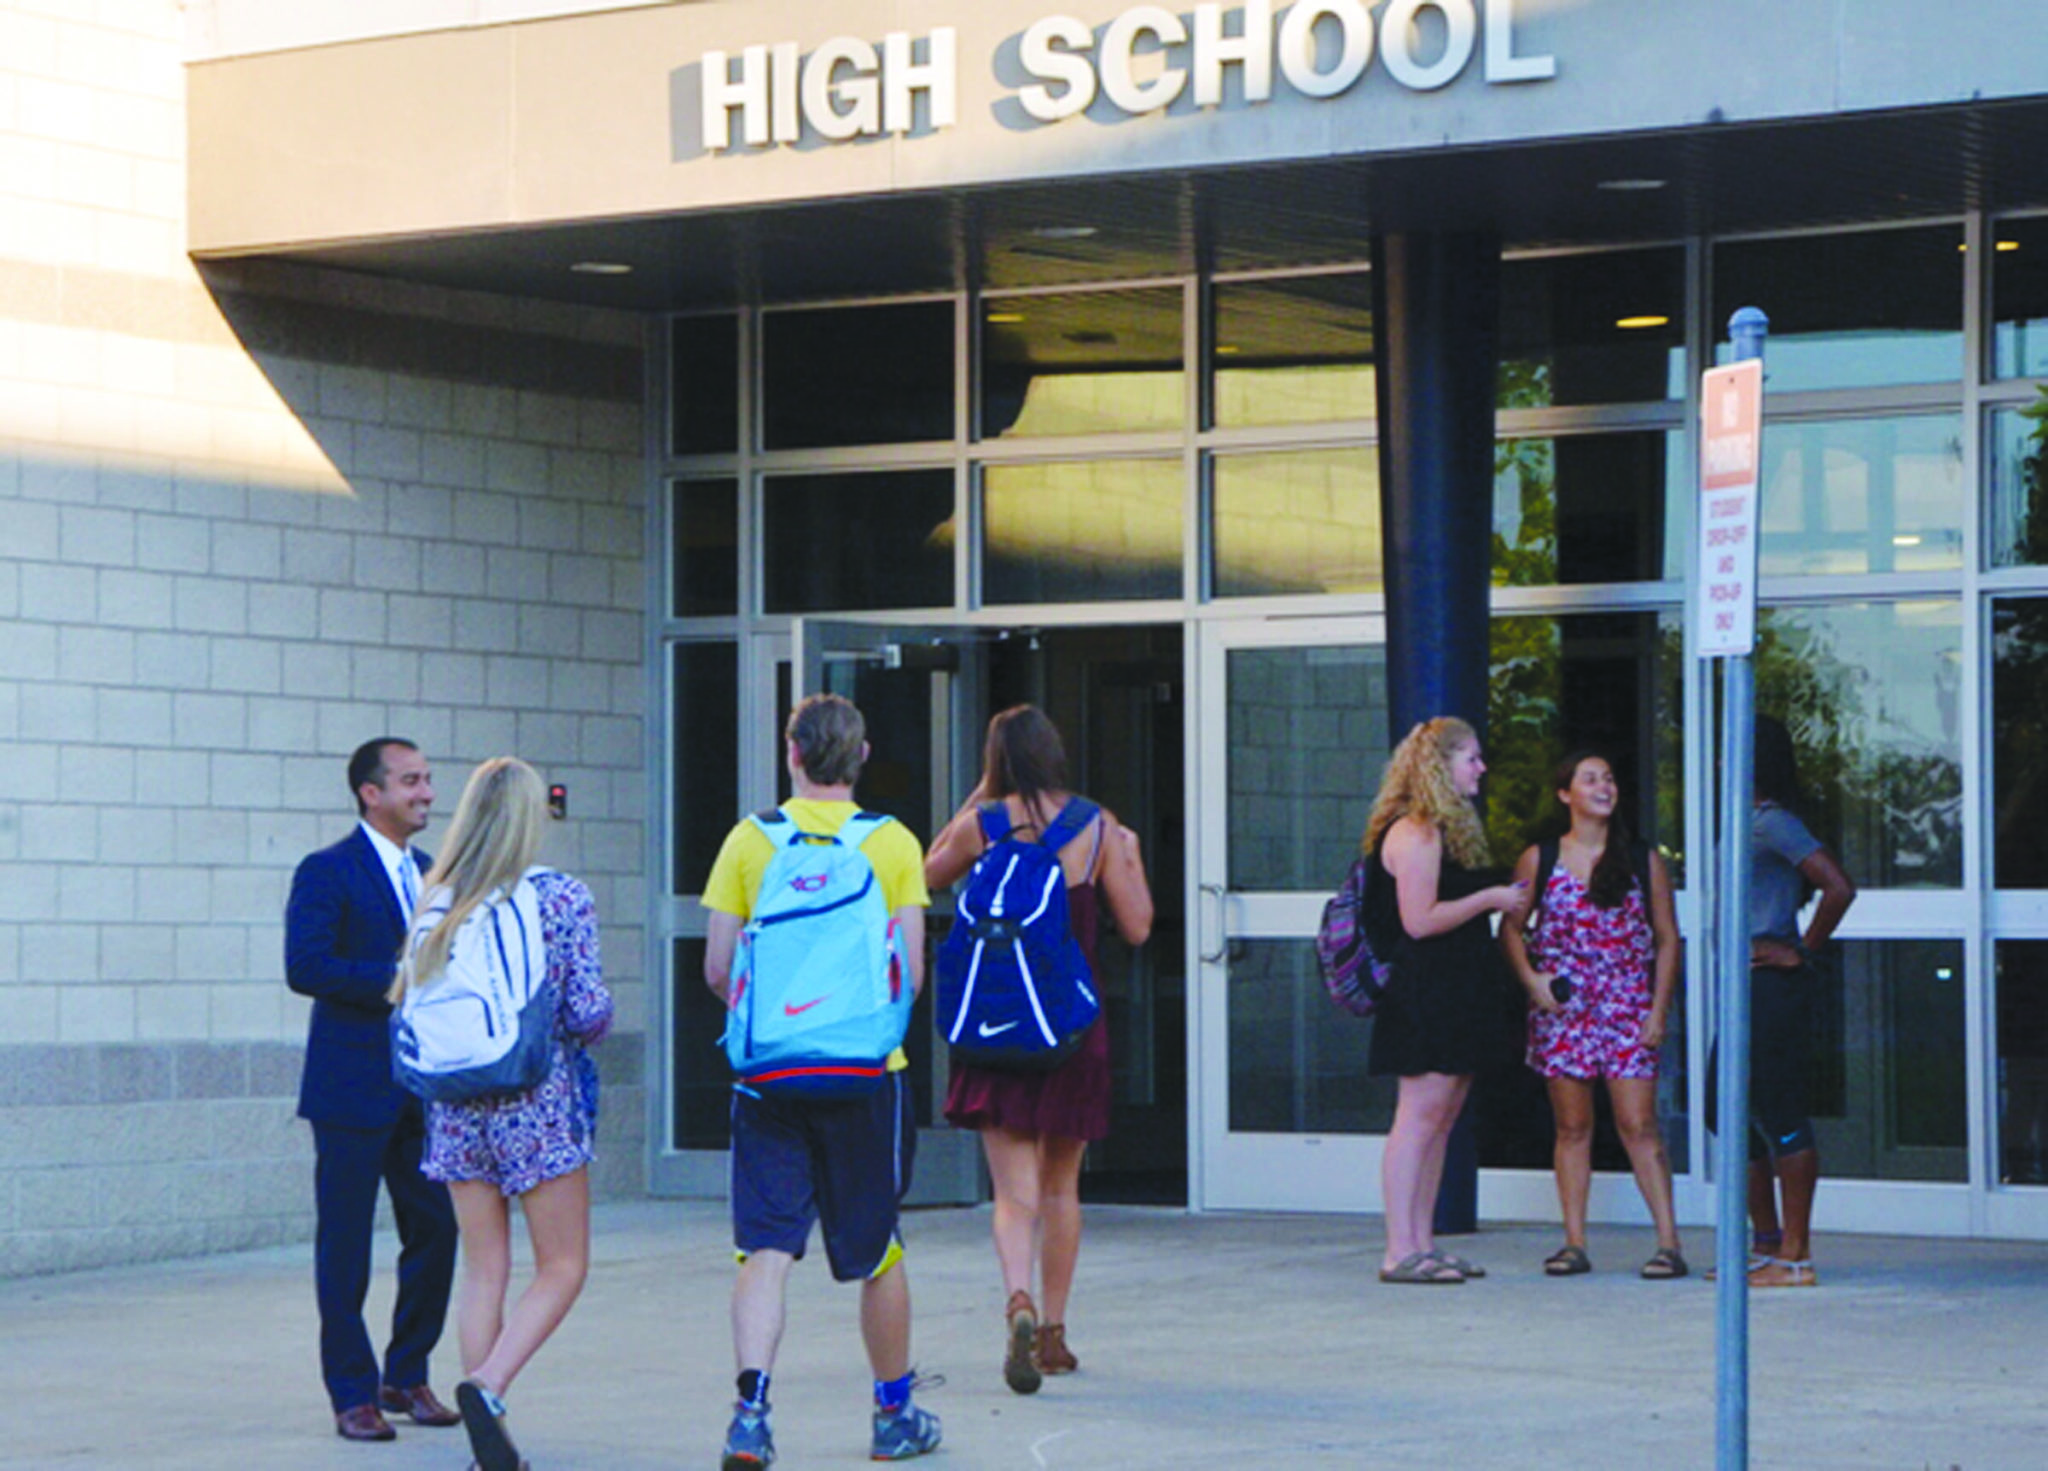 School district to receive safety award